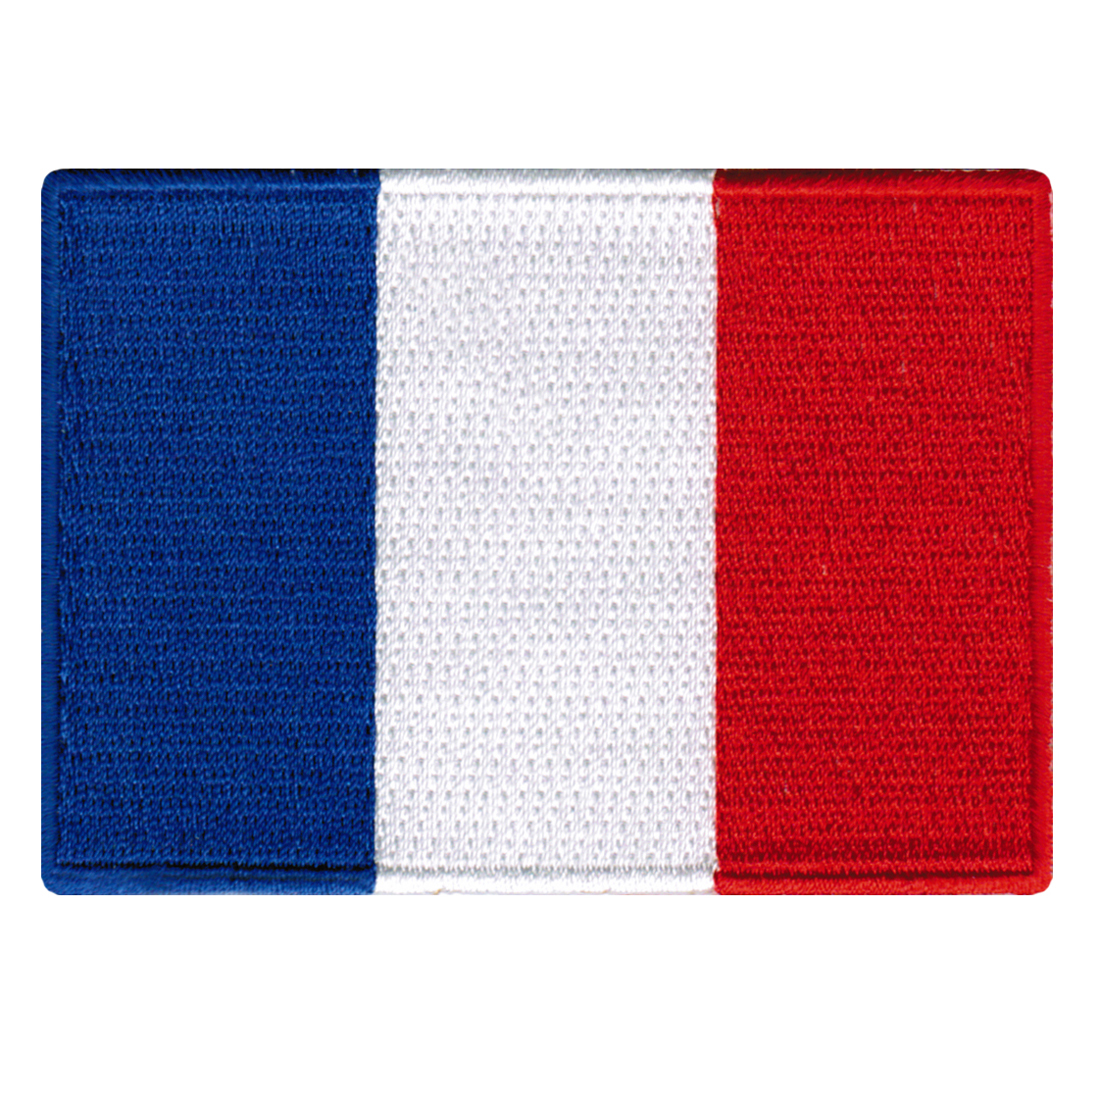 France Flag Embroidered Iron-on Patch